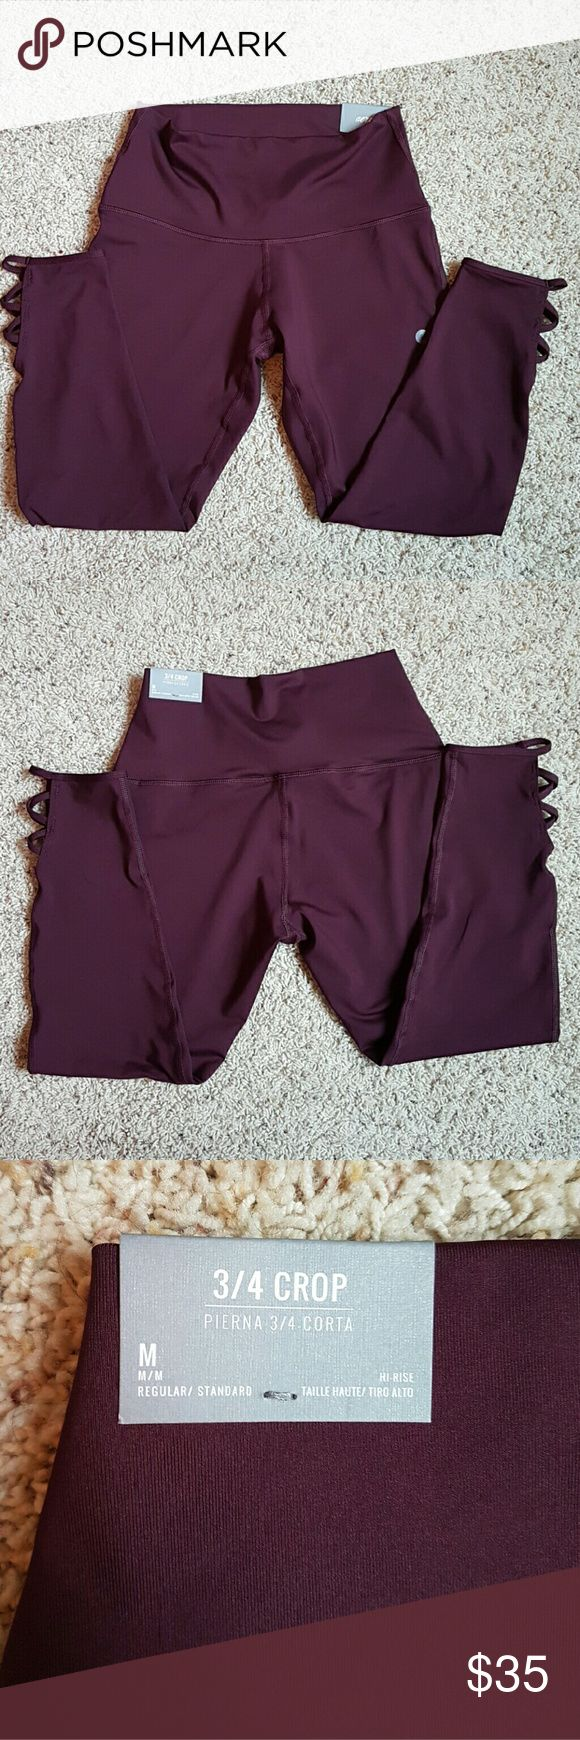 Aerie Criss Cross Leggings Deep Plum 3/4 length athletic/day-wear leggings/crop with criss-cross design at calves. High-rise and regular fit. Aerie Pants Leggings